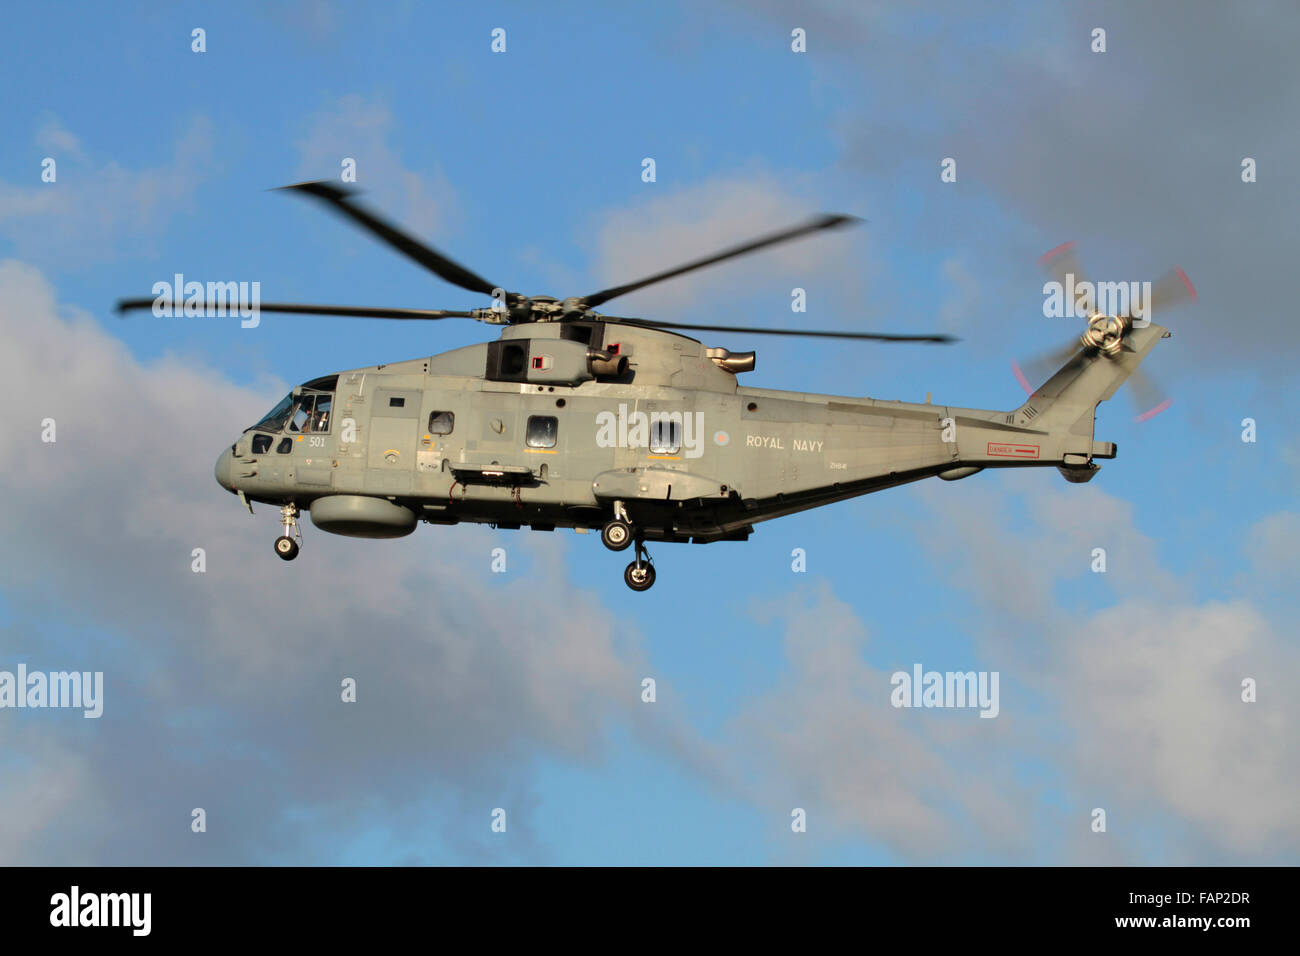 AgustaWestland Merlin HM2 helicopter of Britain's Royal Navy in flight with wheels down - Stock Image